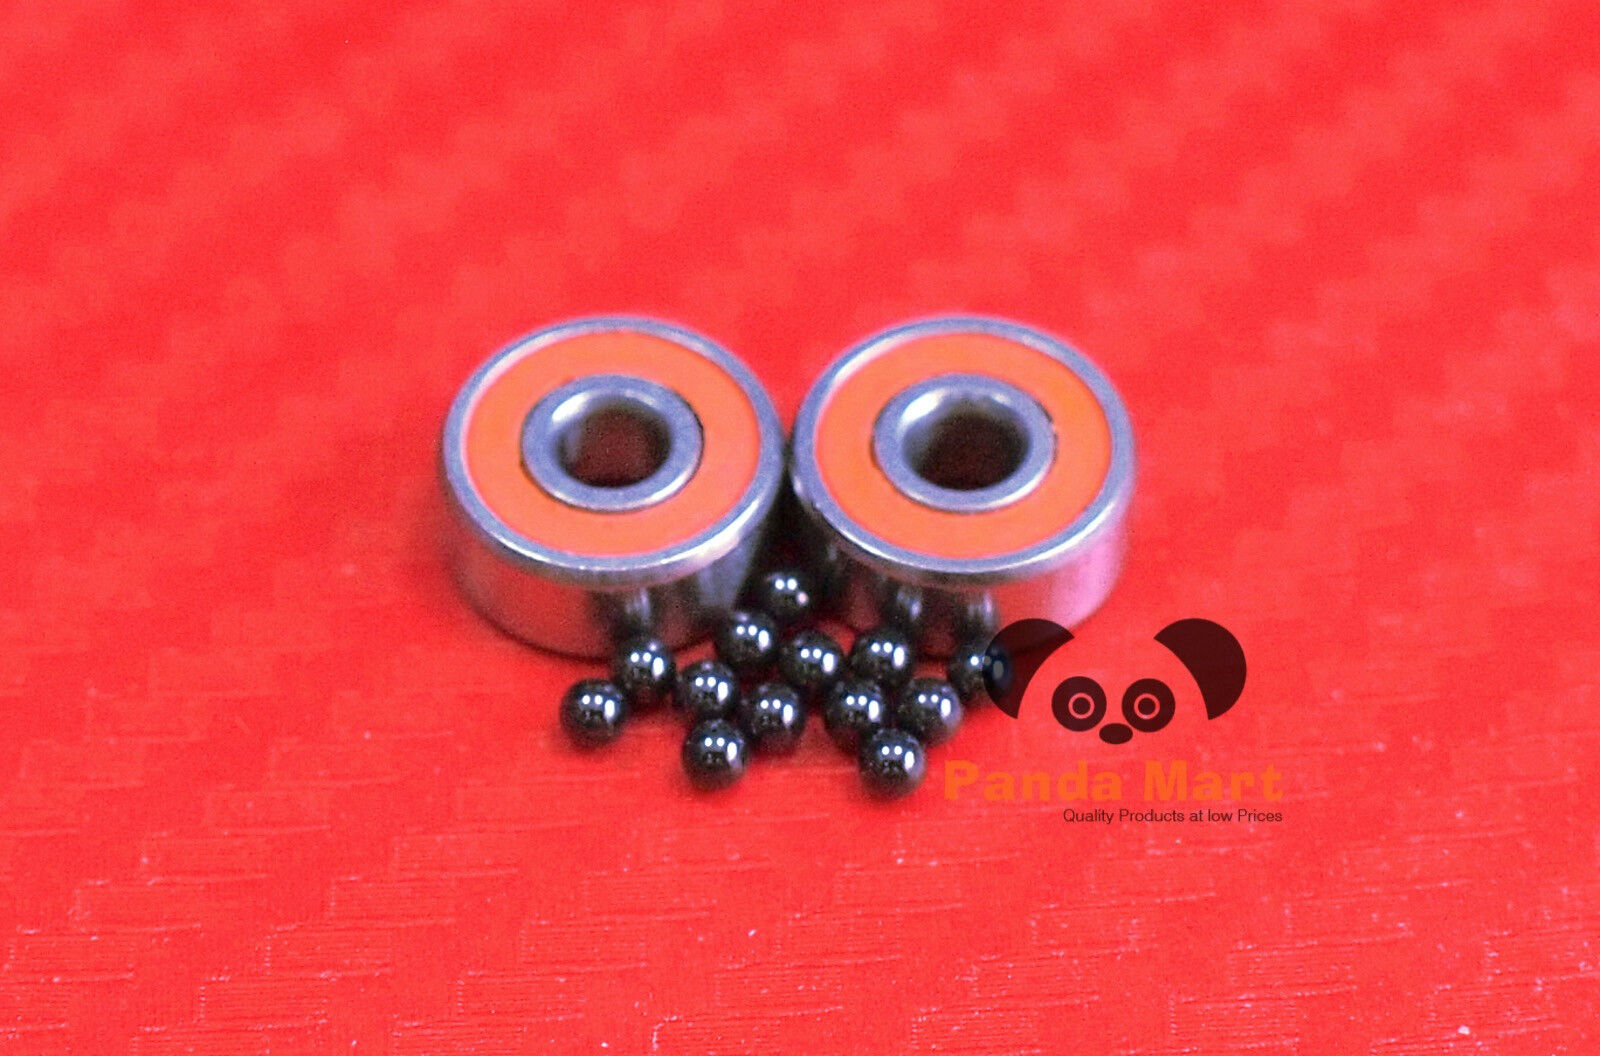 [QTY 10] S693C-2OS  AF2 ABEC-7 HYBRID CERAMIC orange Spool Bearings 3x8x4 384  very popular